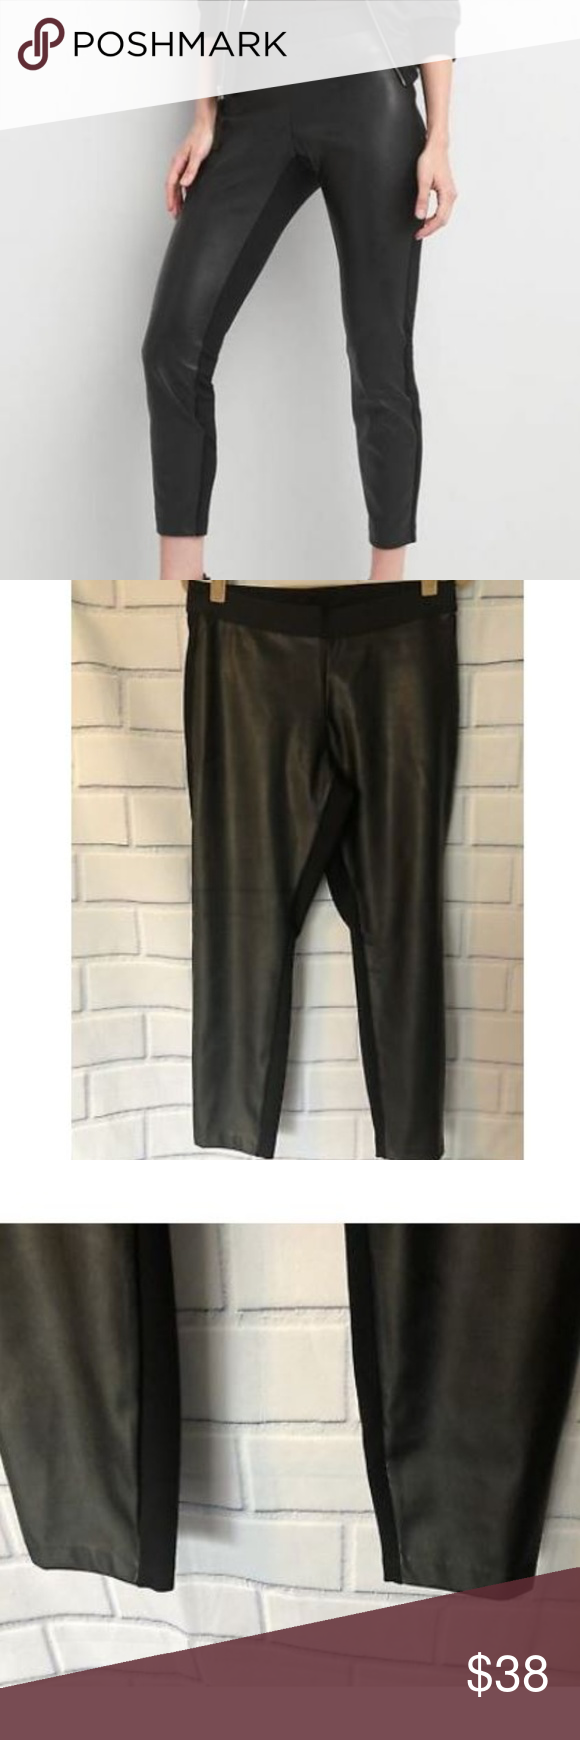 ebceab910f8393 GAP Women's Faux Leather Front Leggings Black Smooth, stretch ponte knit.  Elasticized band at waist. Faux leather front. #905273 Measurements:  (approximate) ...